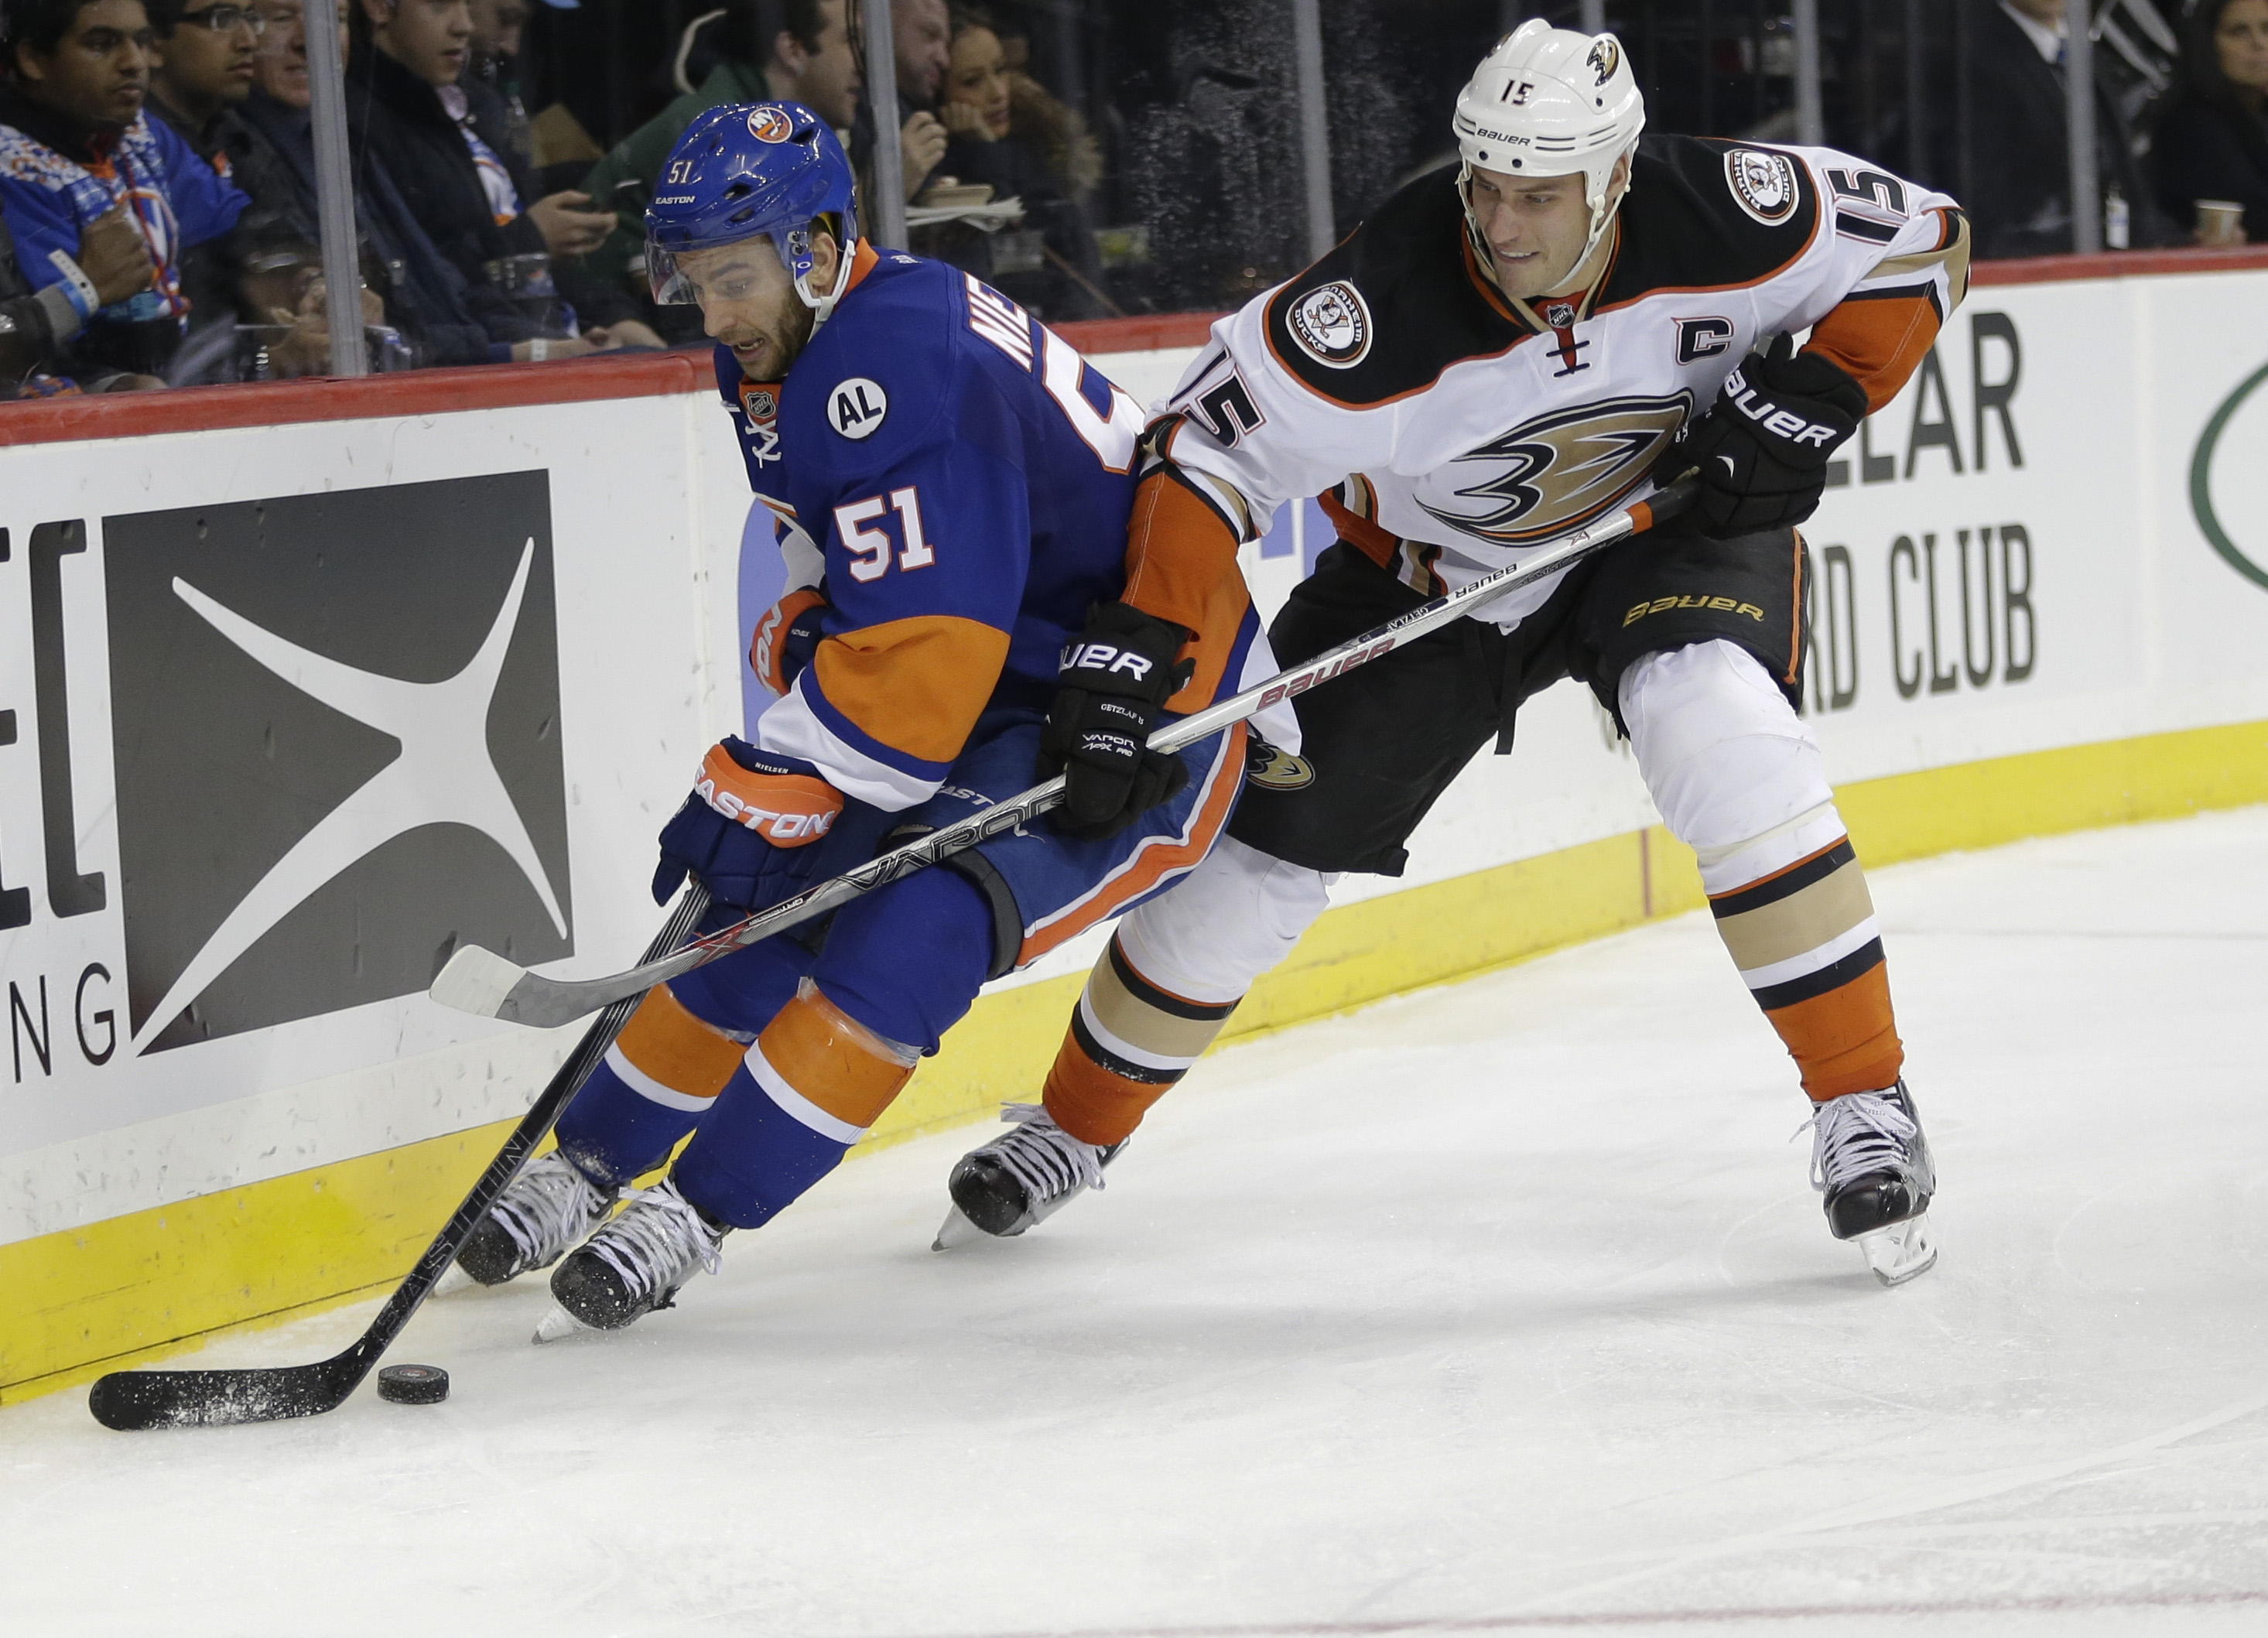 New York Islanders' Frans Nielsen (51) and Anaheim Ducks' Ryan Getzlaf (15) fight for control of the puck during the second period of an NHL hockey game Monday, Dec. 21, 2015, in New York. (AP Photo/Frank Franklin II)